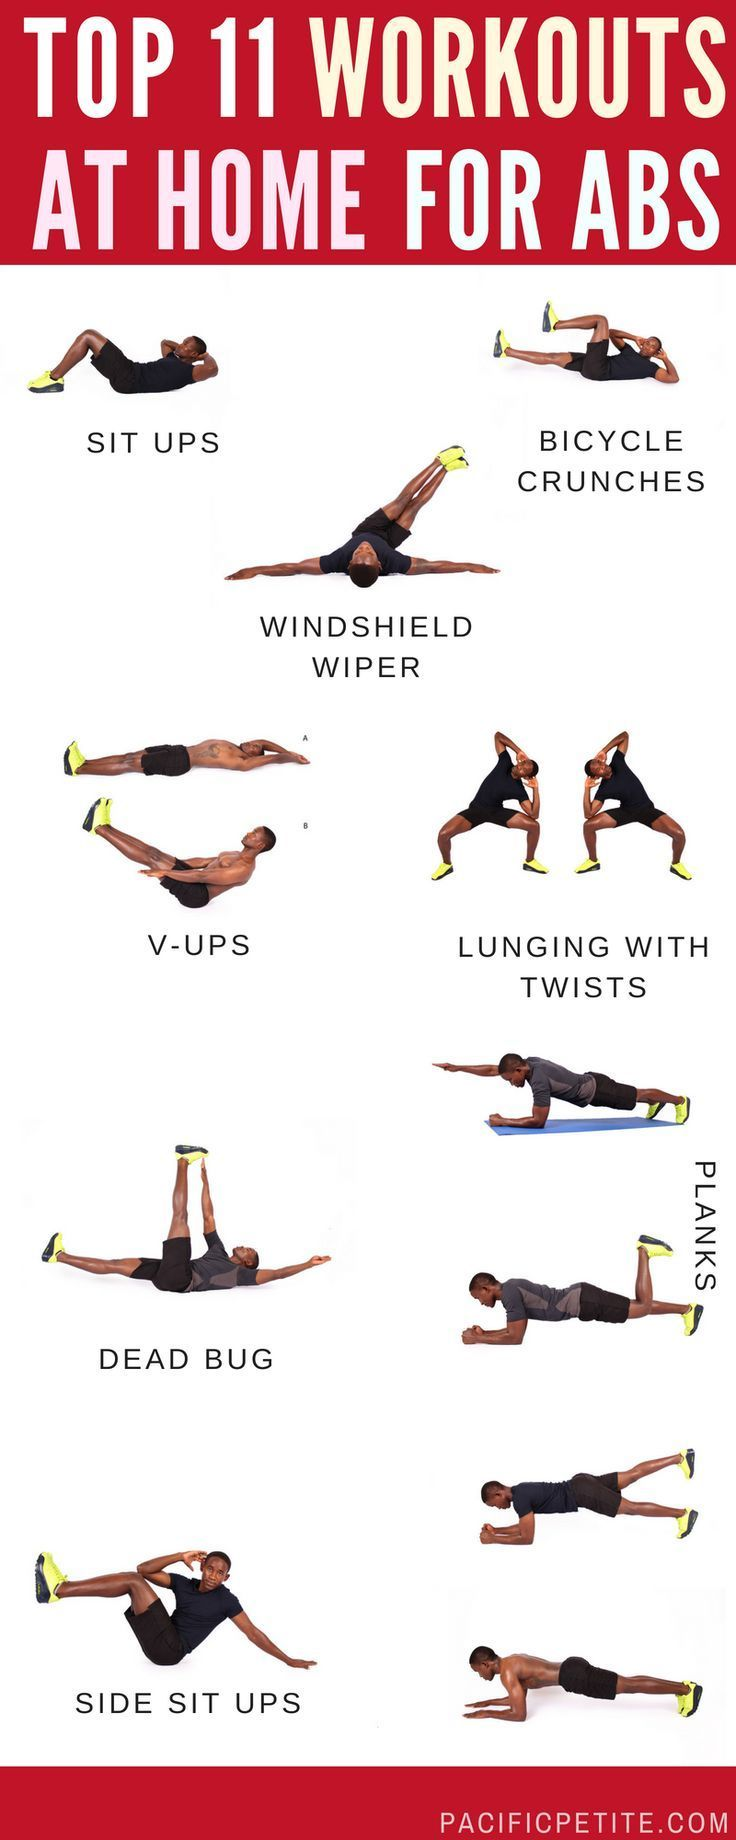 10 Best Stomach Muscle Exercises ideas  abs workout, workout plan